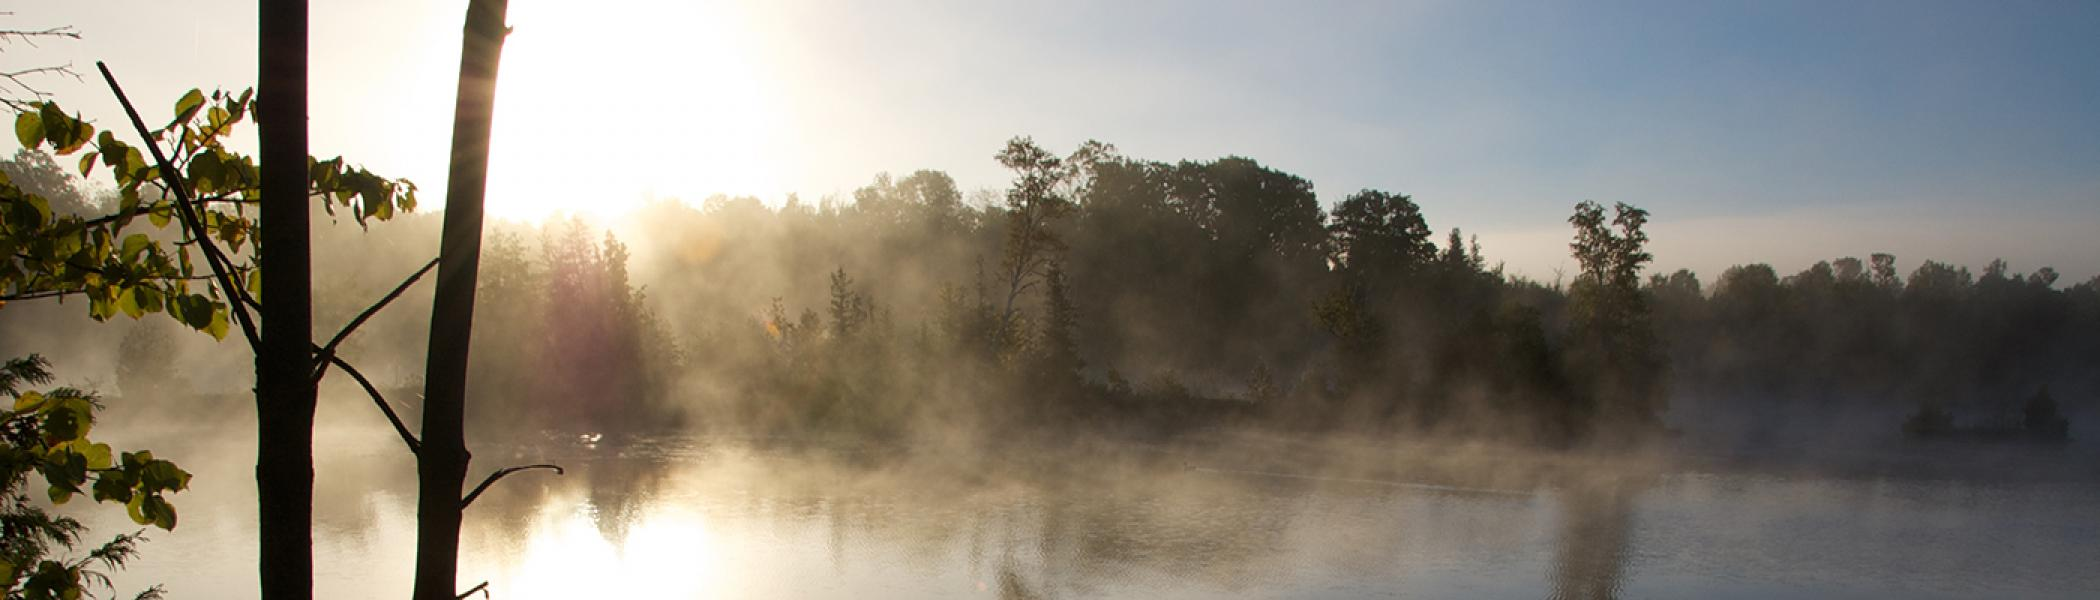 Mist on a lake in the morning summer sun